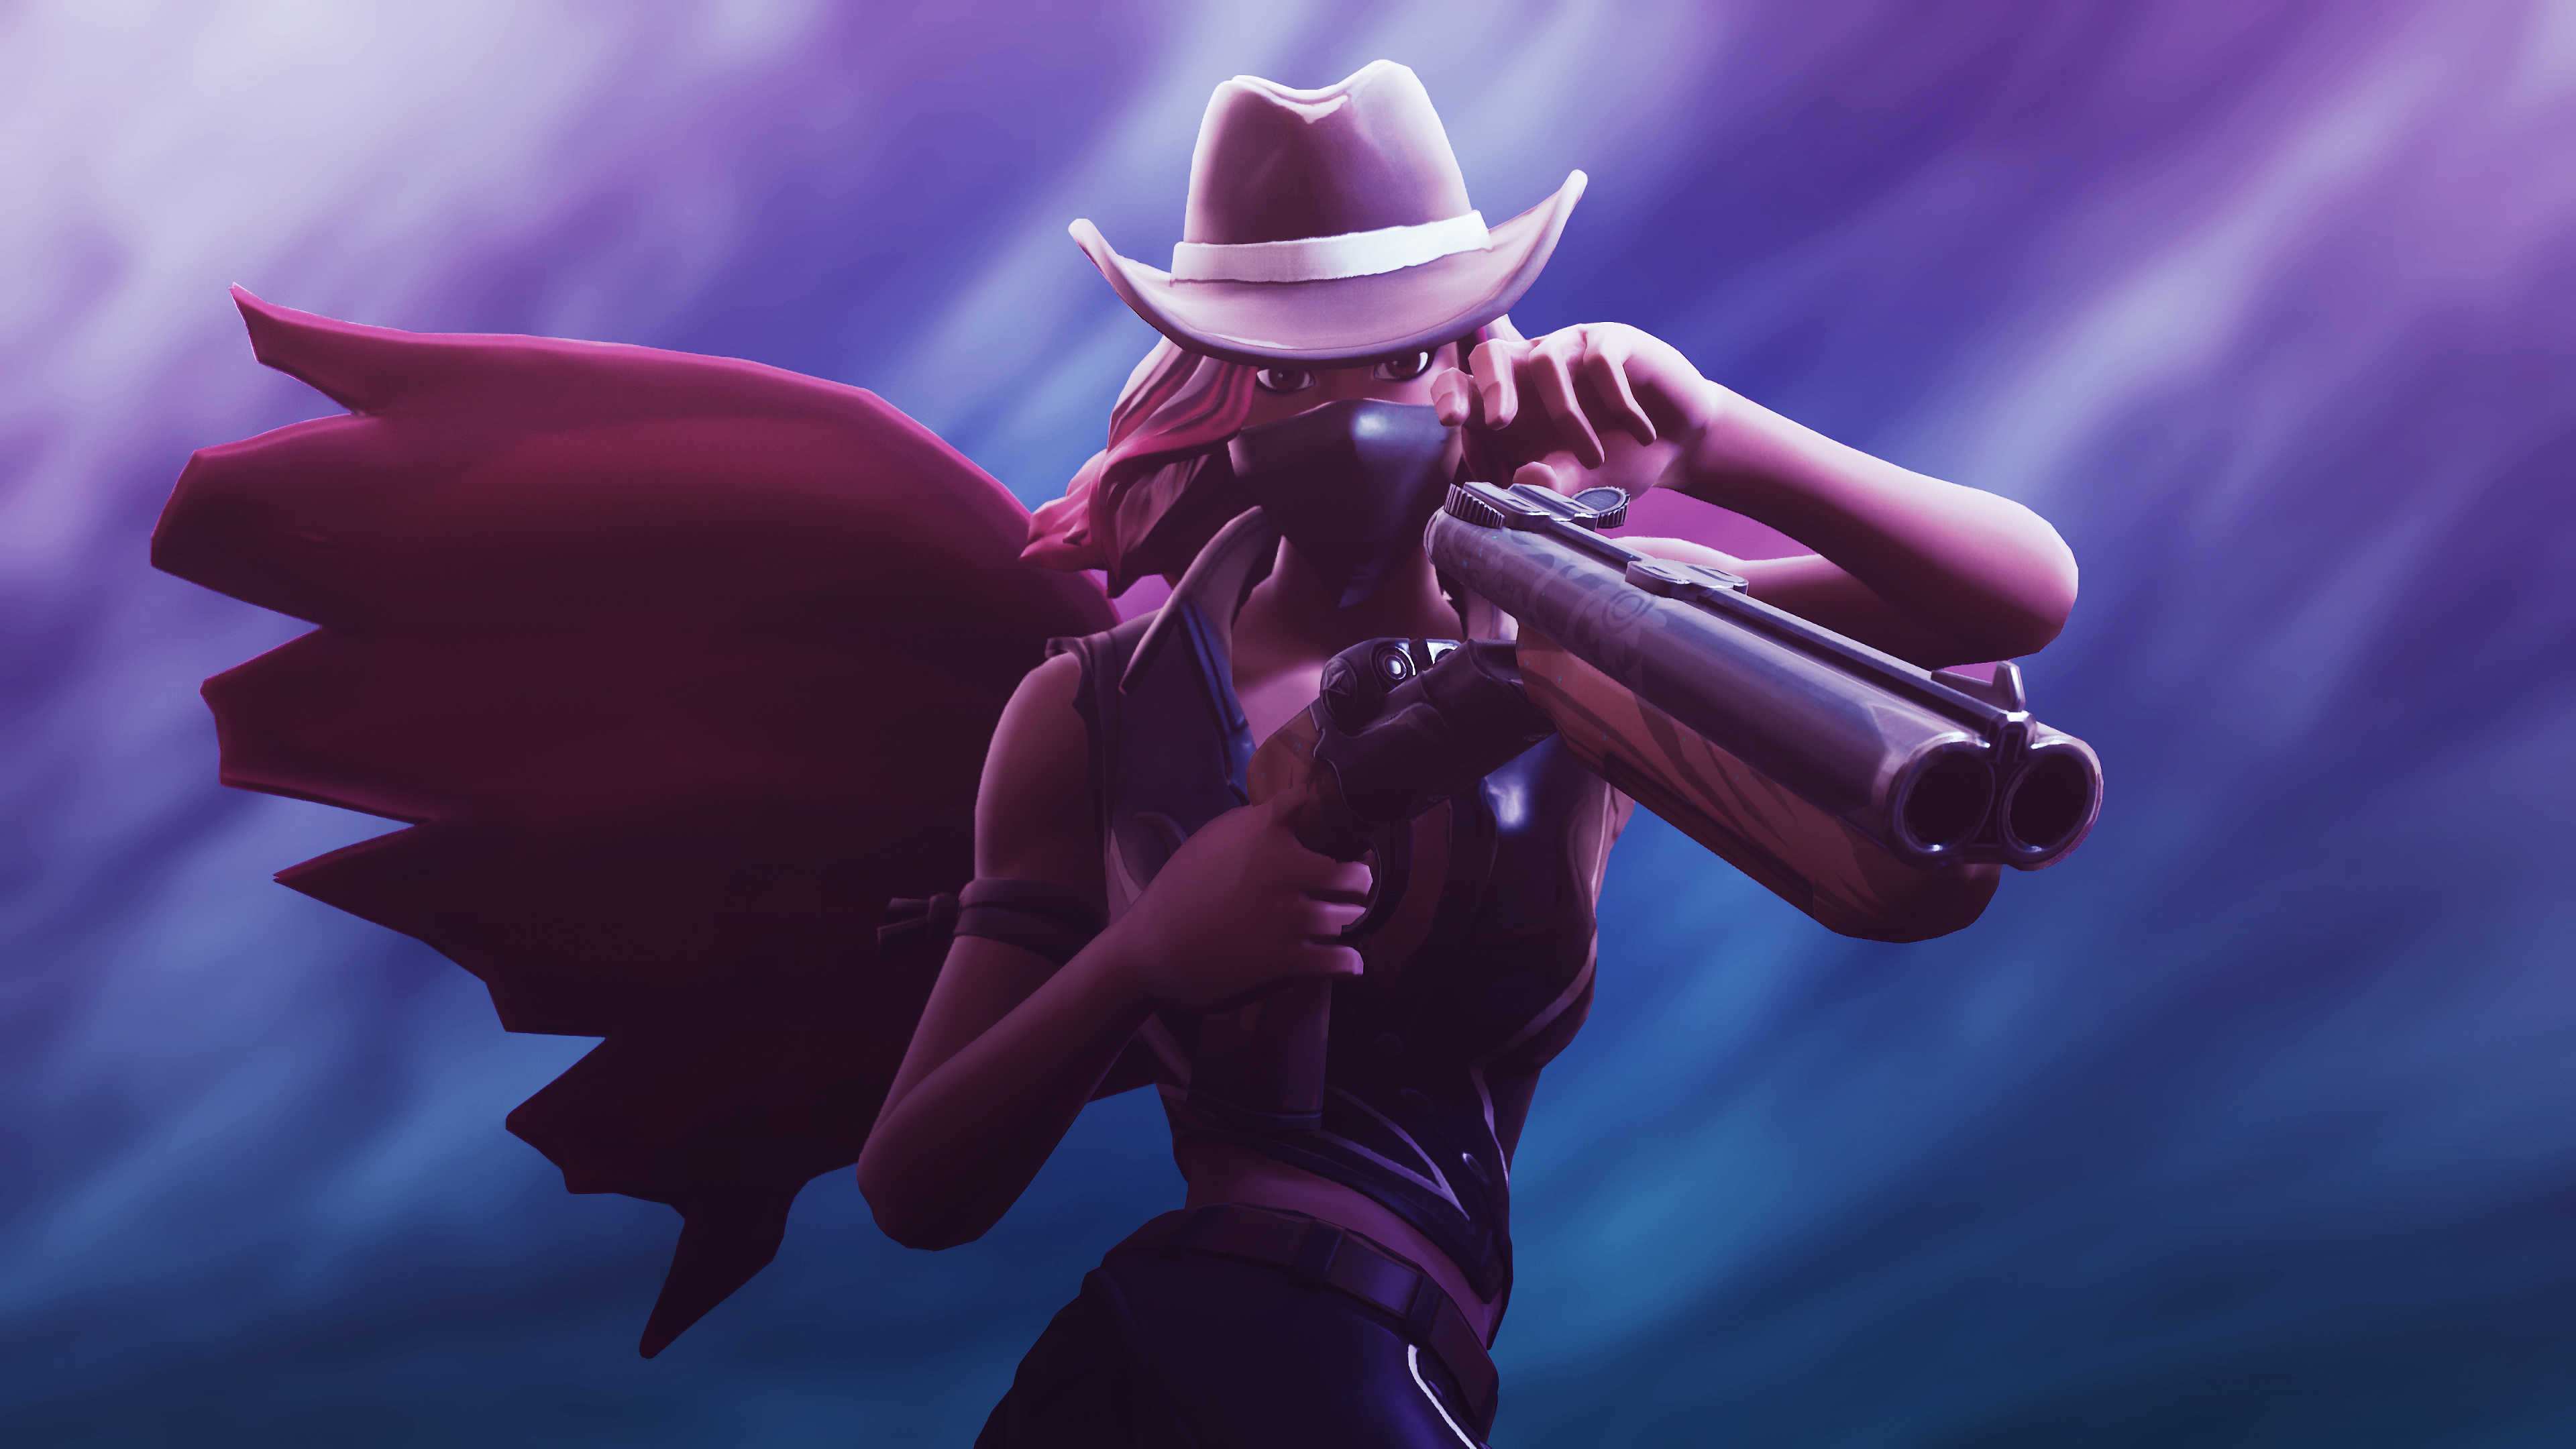 1366x768 Fornite Girl 1366x768 Resolution Hd 4k Wallpapers